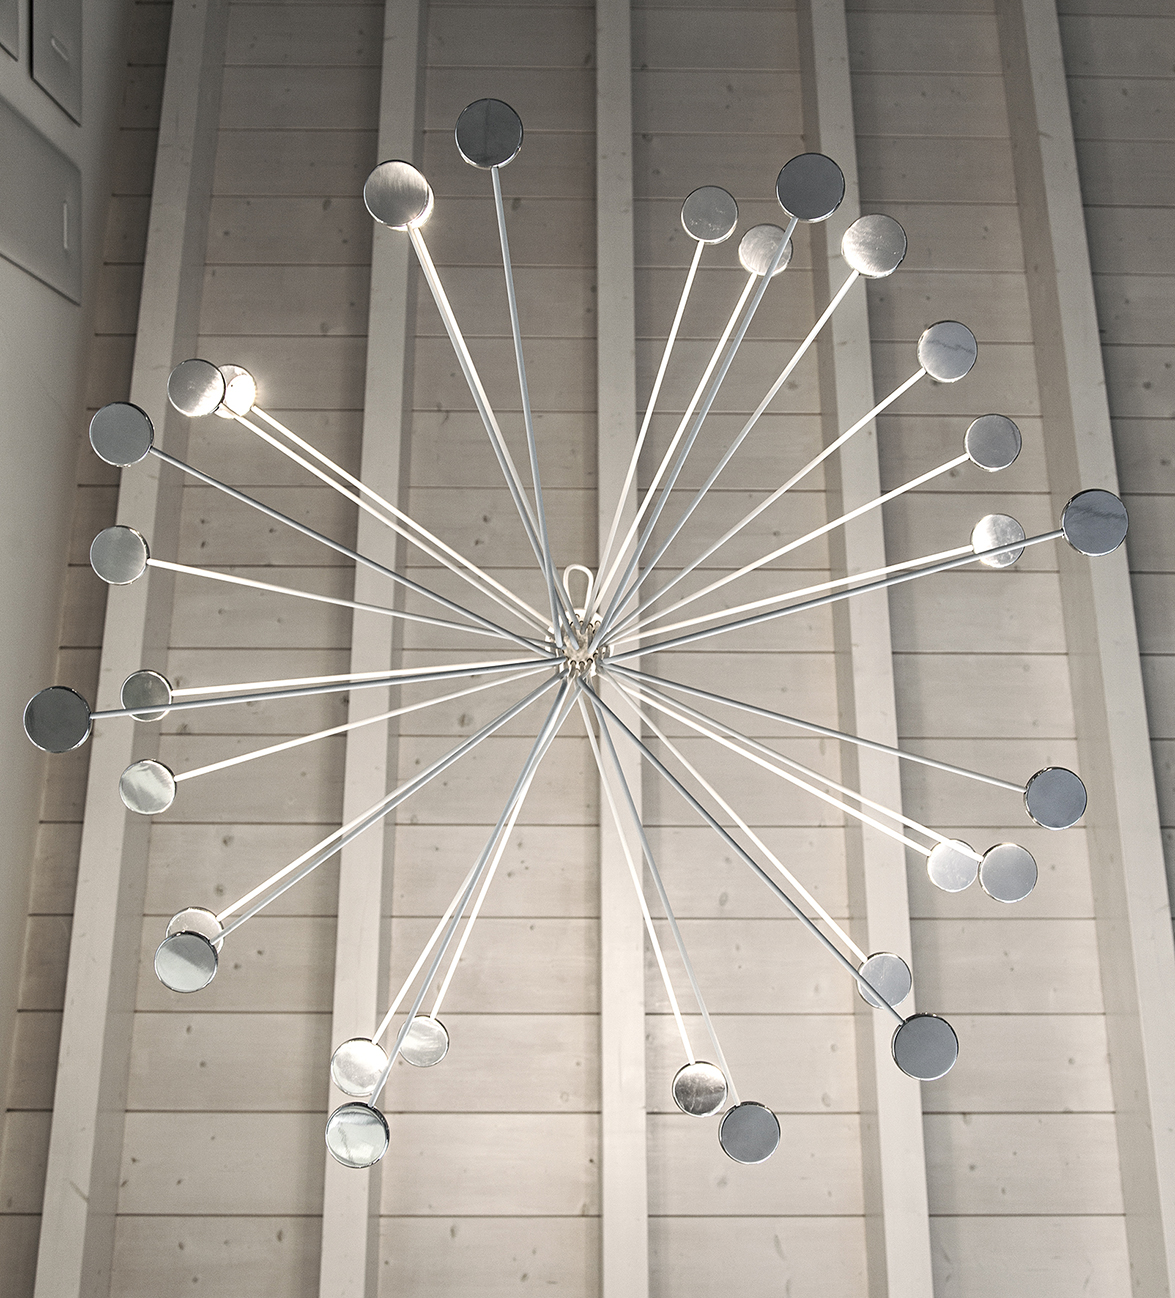 Arbor of IconeLuce, creativity in lighting designed by Marco Pagnoncelli